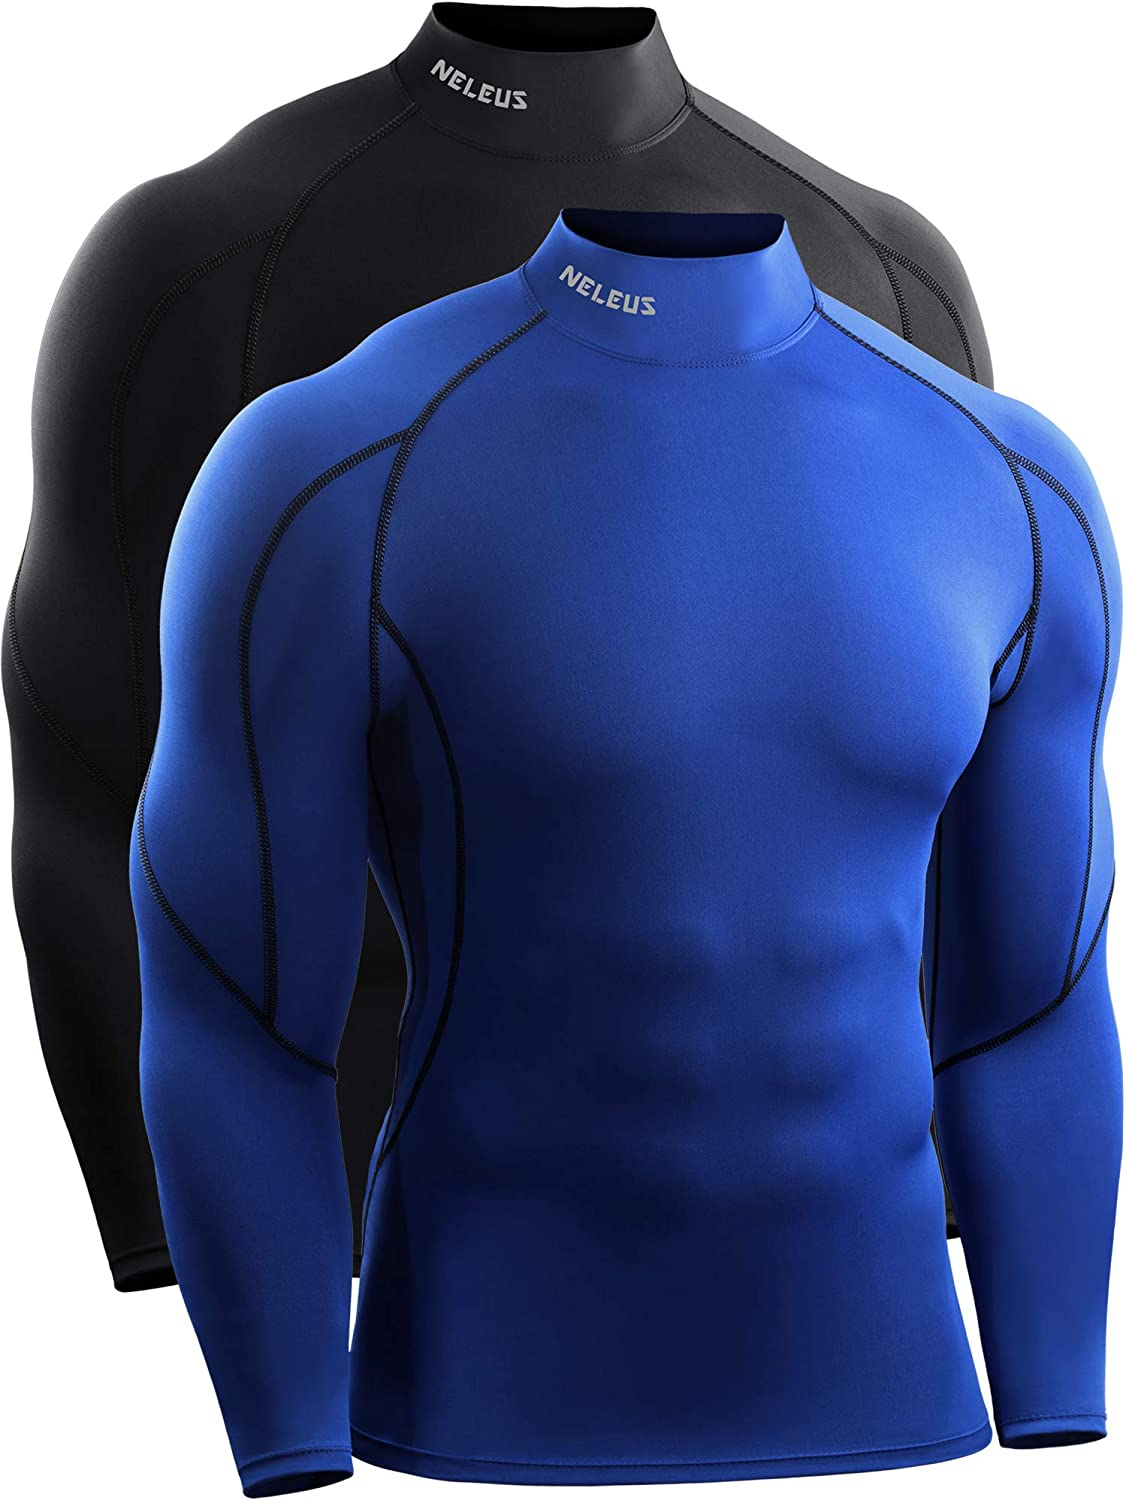 Neleus Men's Quick Dry Long Sleeve Compression Shirt